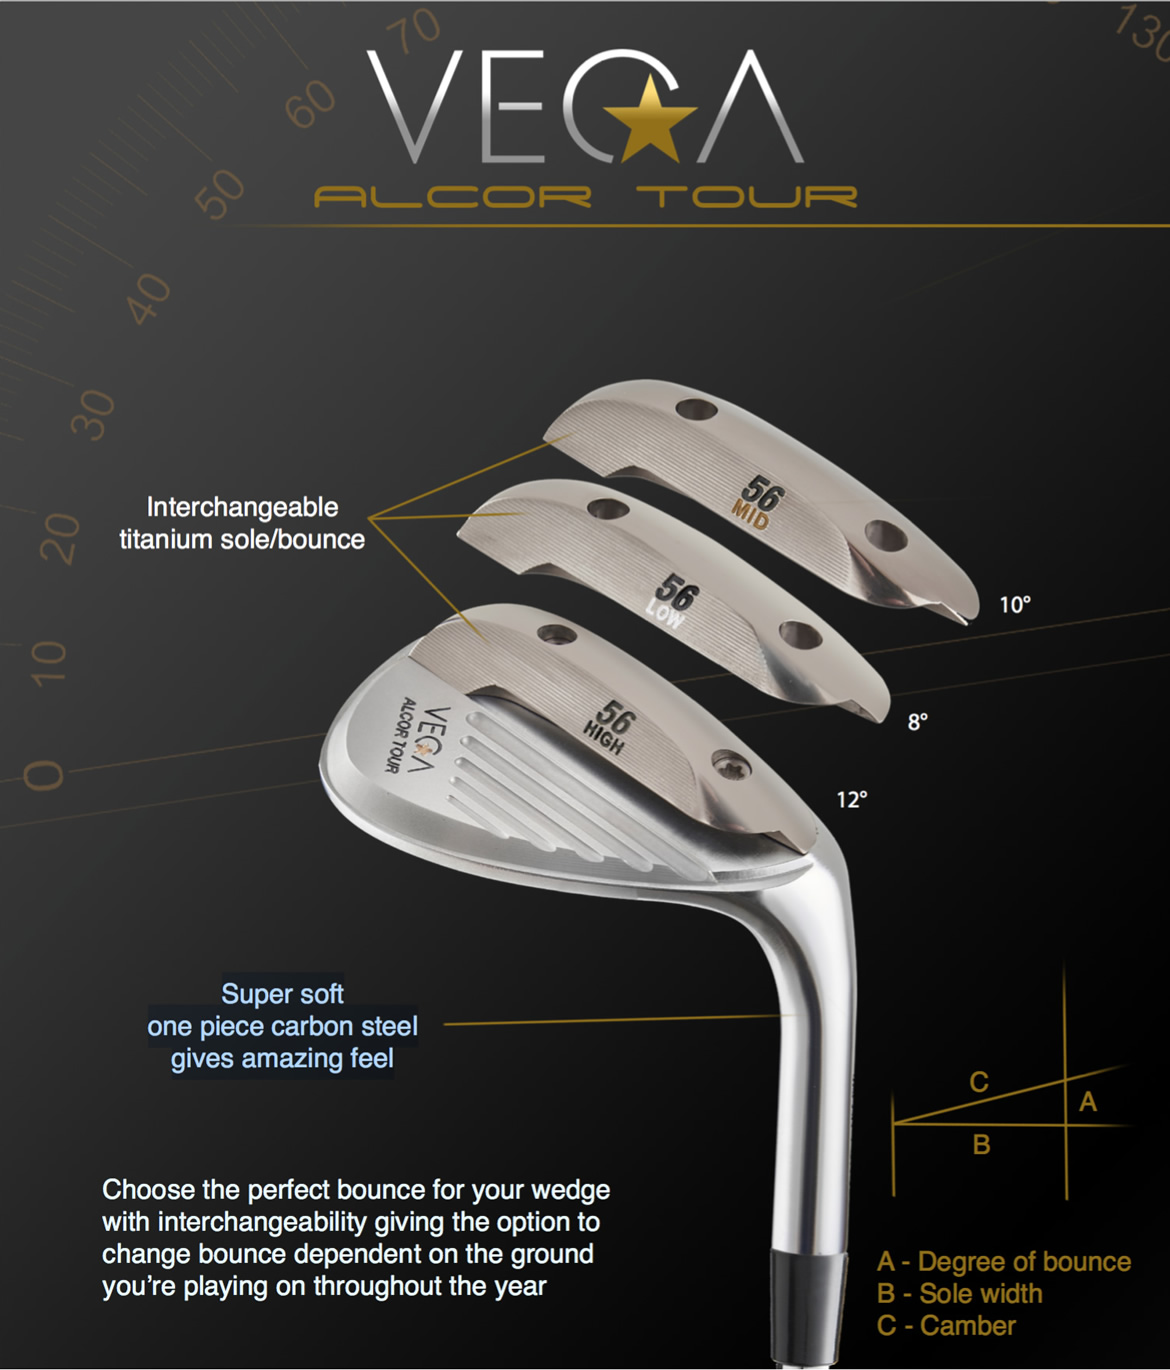 Vega Alcor Tour Wedge Design